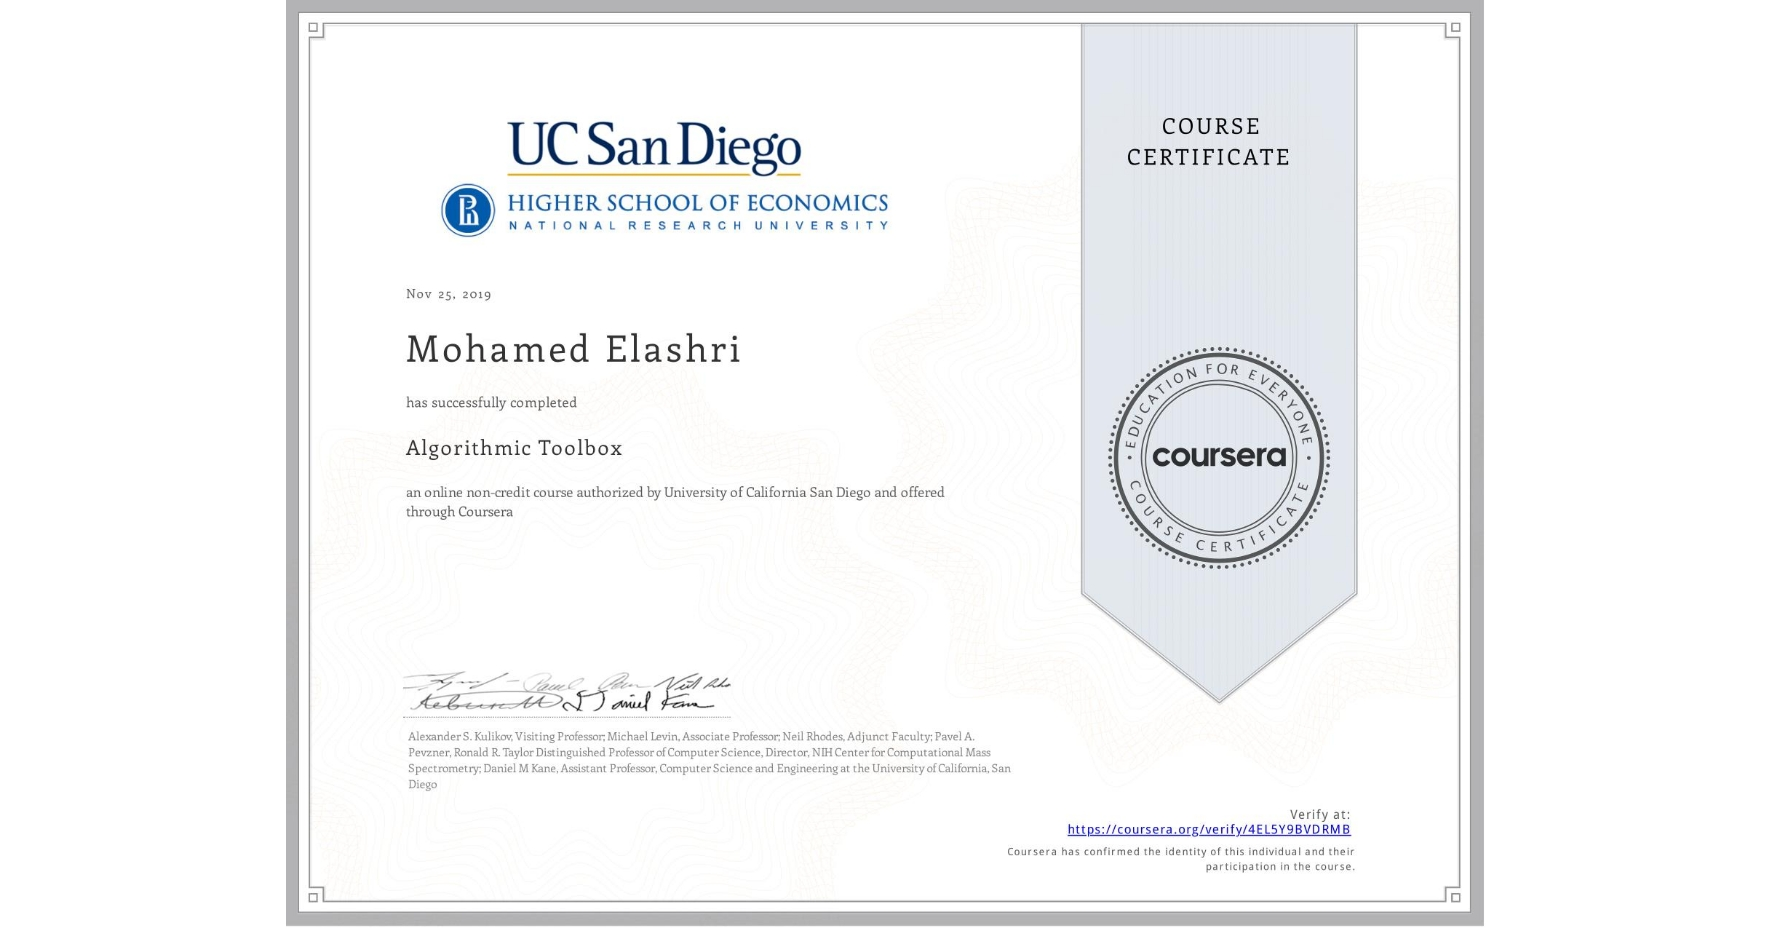 View certificate for Mohamed Elashri, Algorithmic Toolbox, an online non-credit course authorized by University of California San Diego & National Research University Higher School of Economics and offered through Coursera